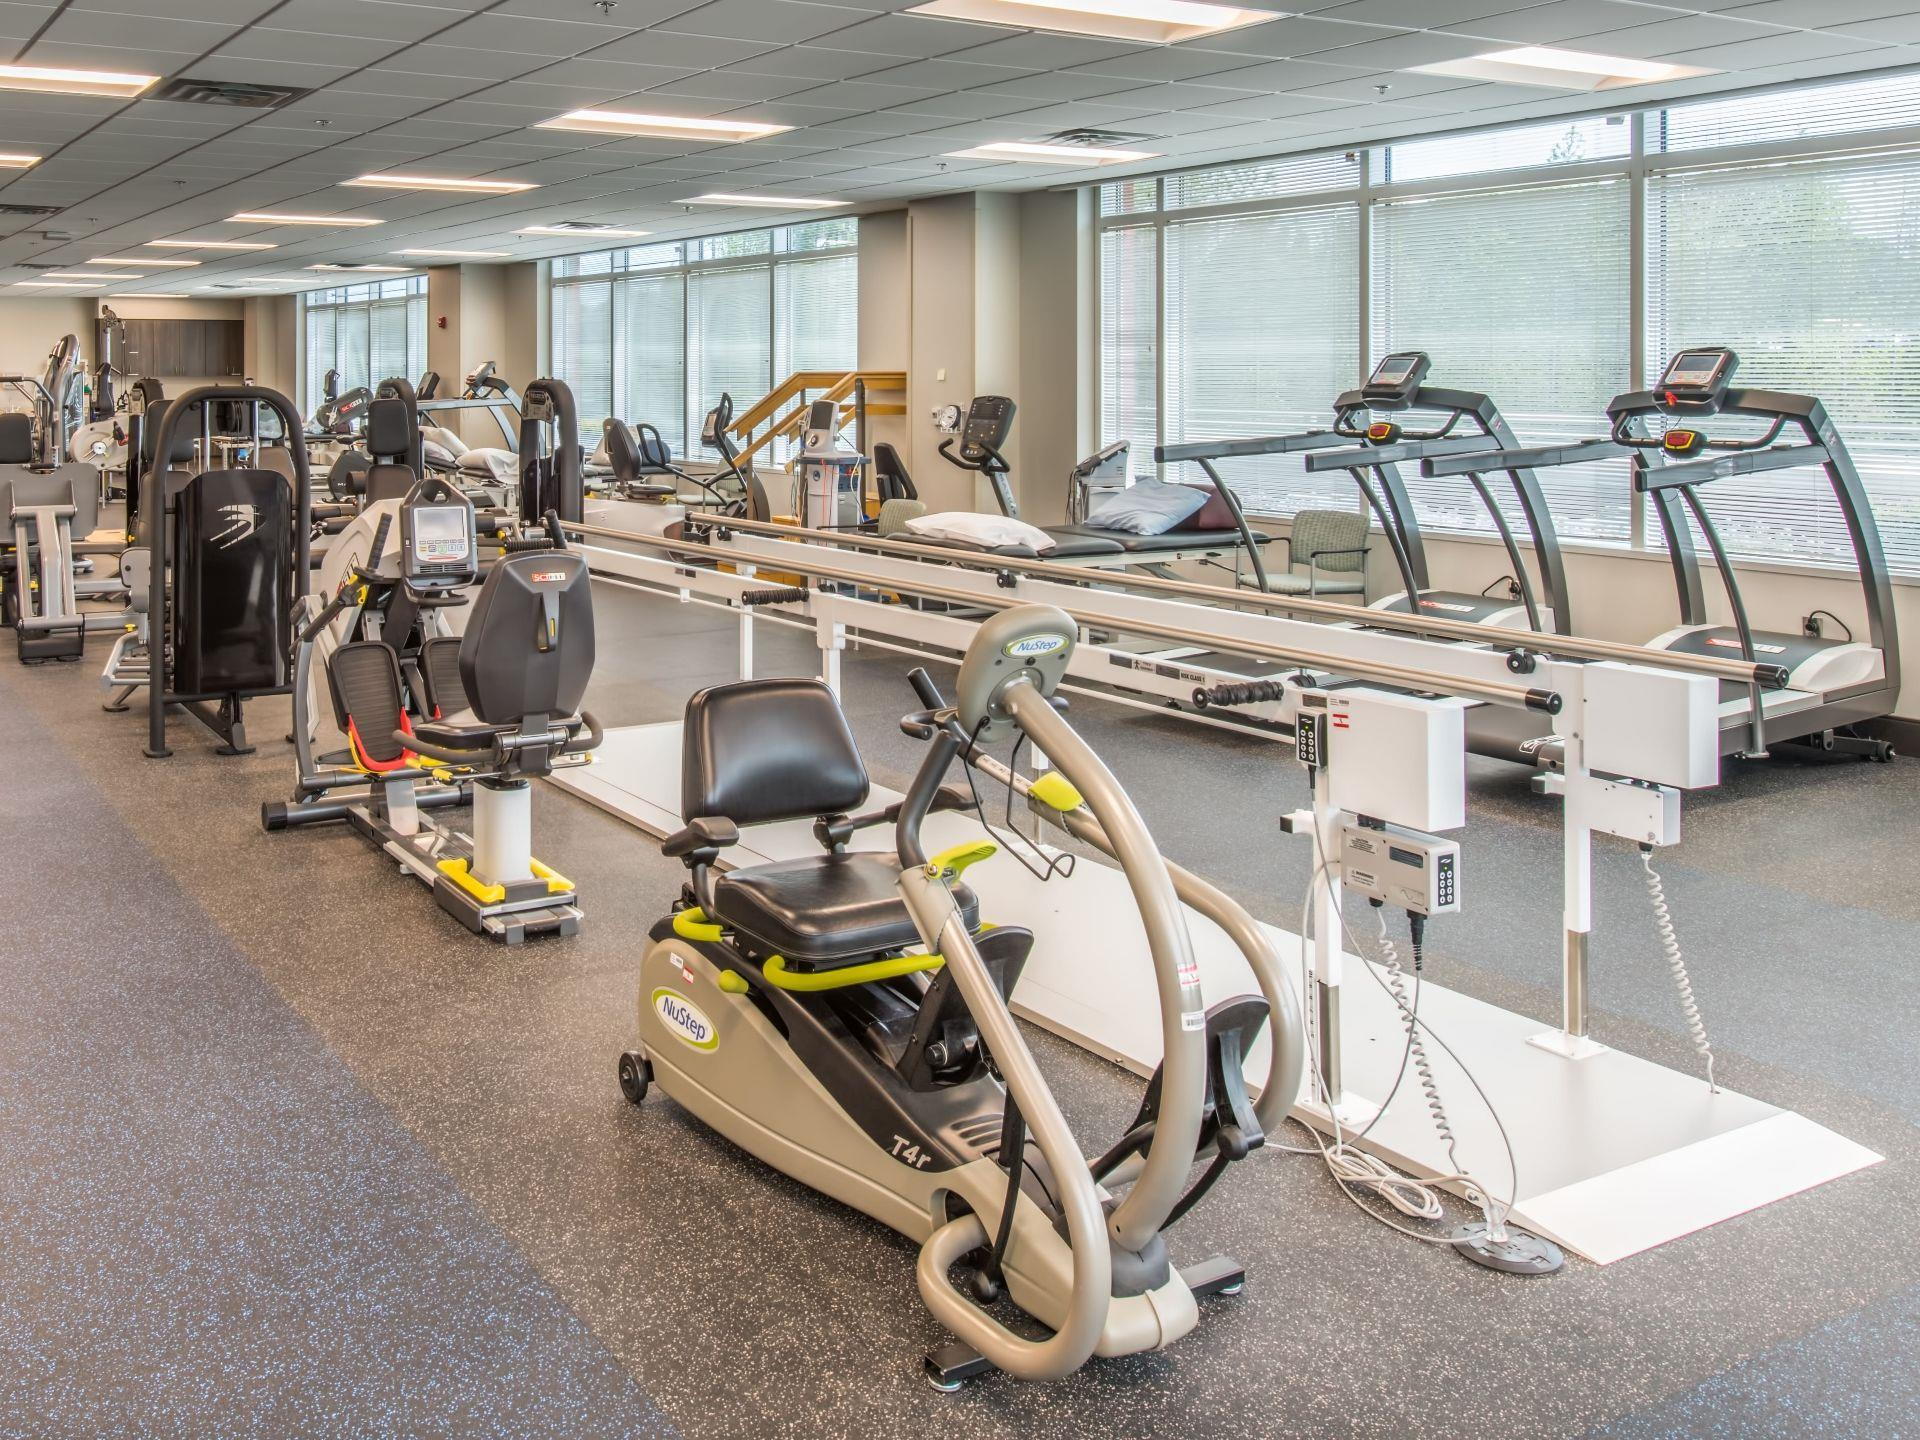 Physical Theraphy area with weights machines and other equipment